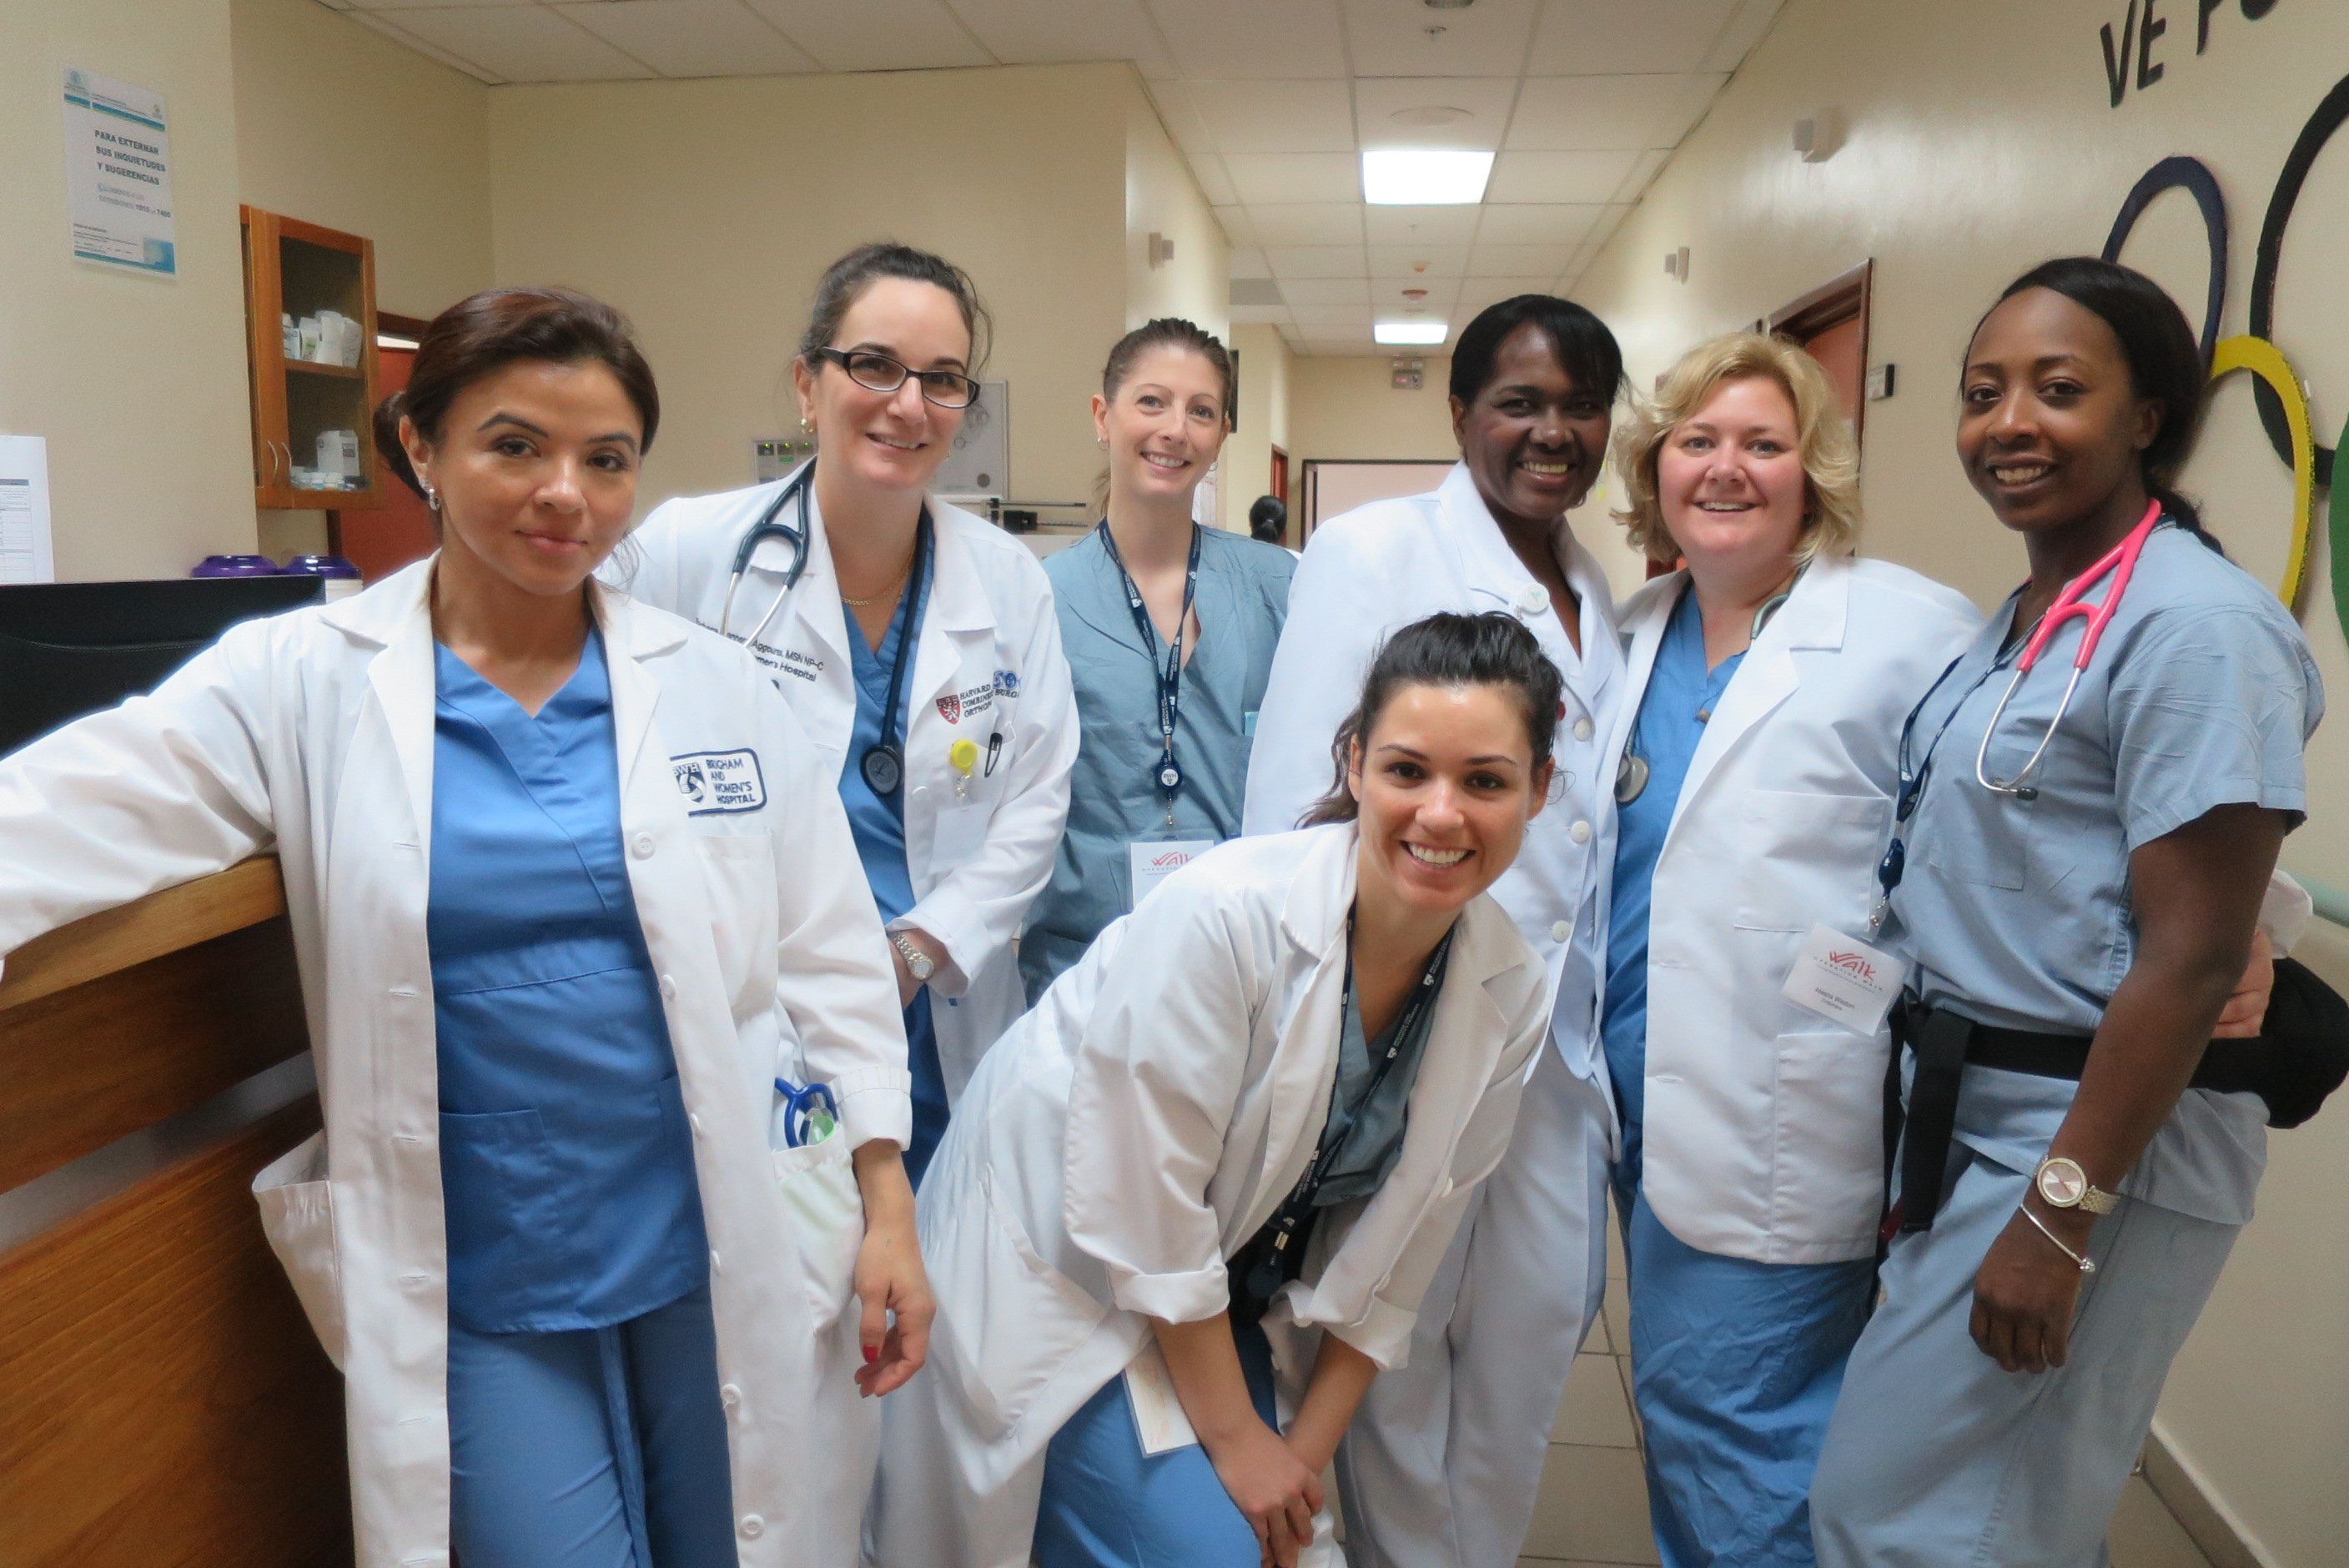 Nurses from BWH, BWFH, MGH and the Dominican Republic who participated in this year's mission take a group photo.